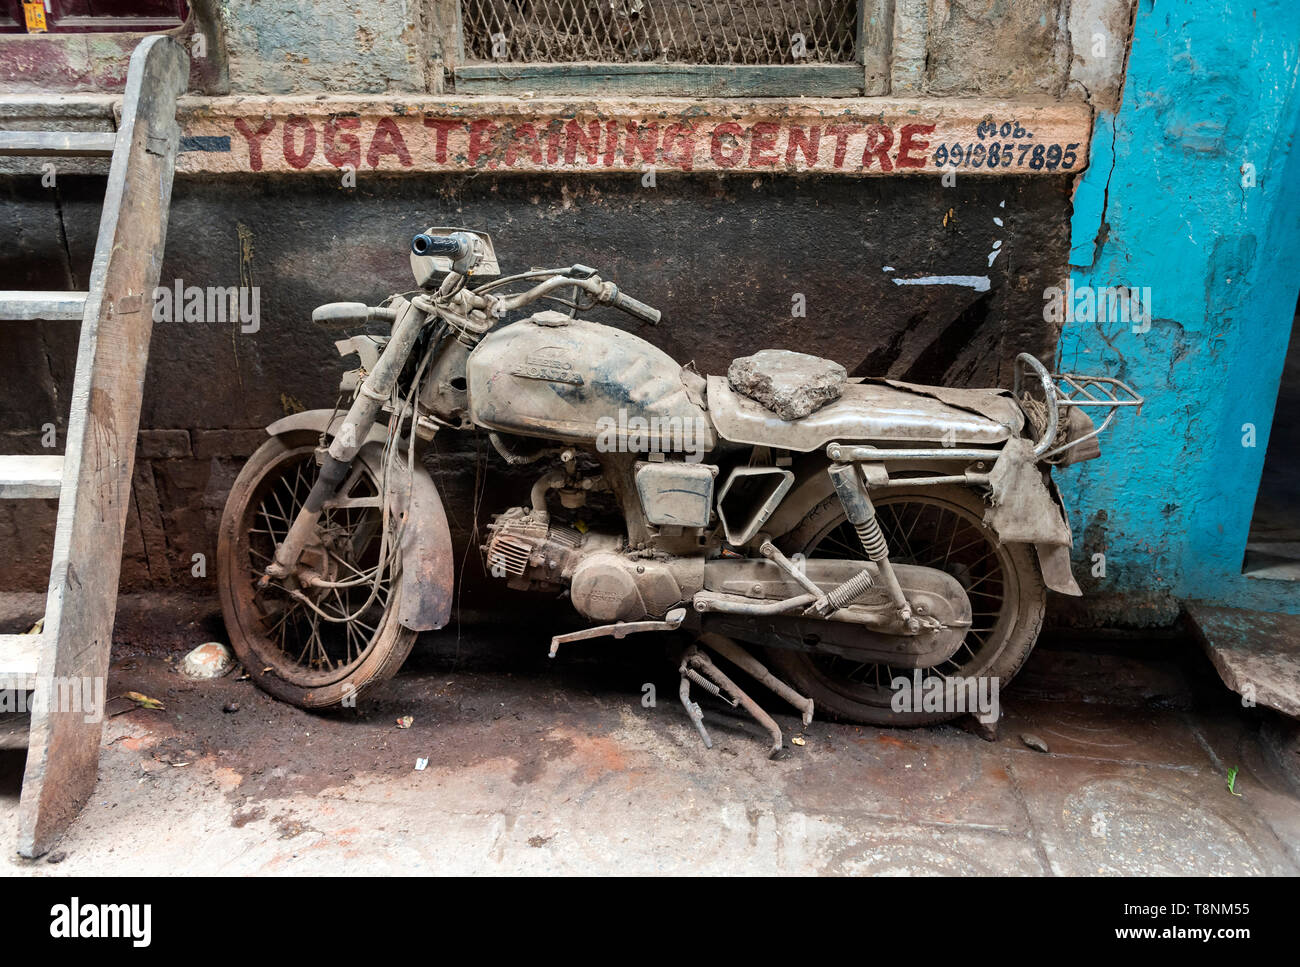 Abandoned dusted motorcycle in the streets of Varanasi Old City, India - Stock Image